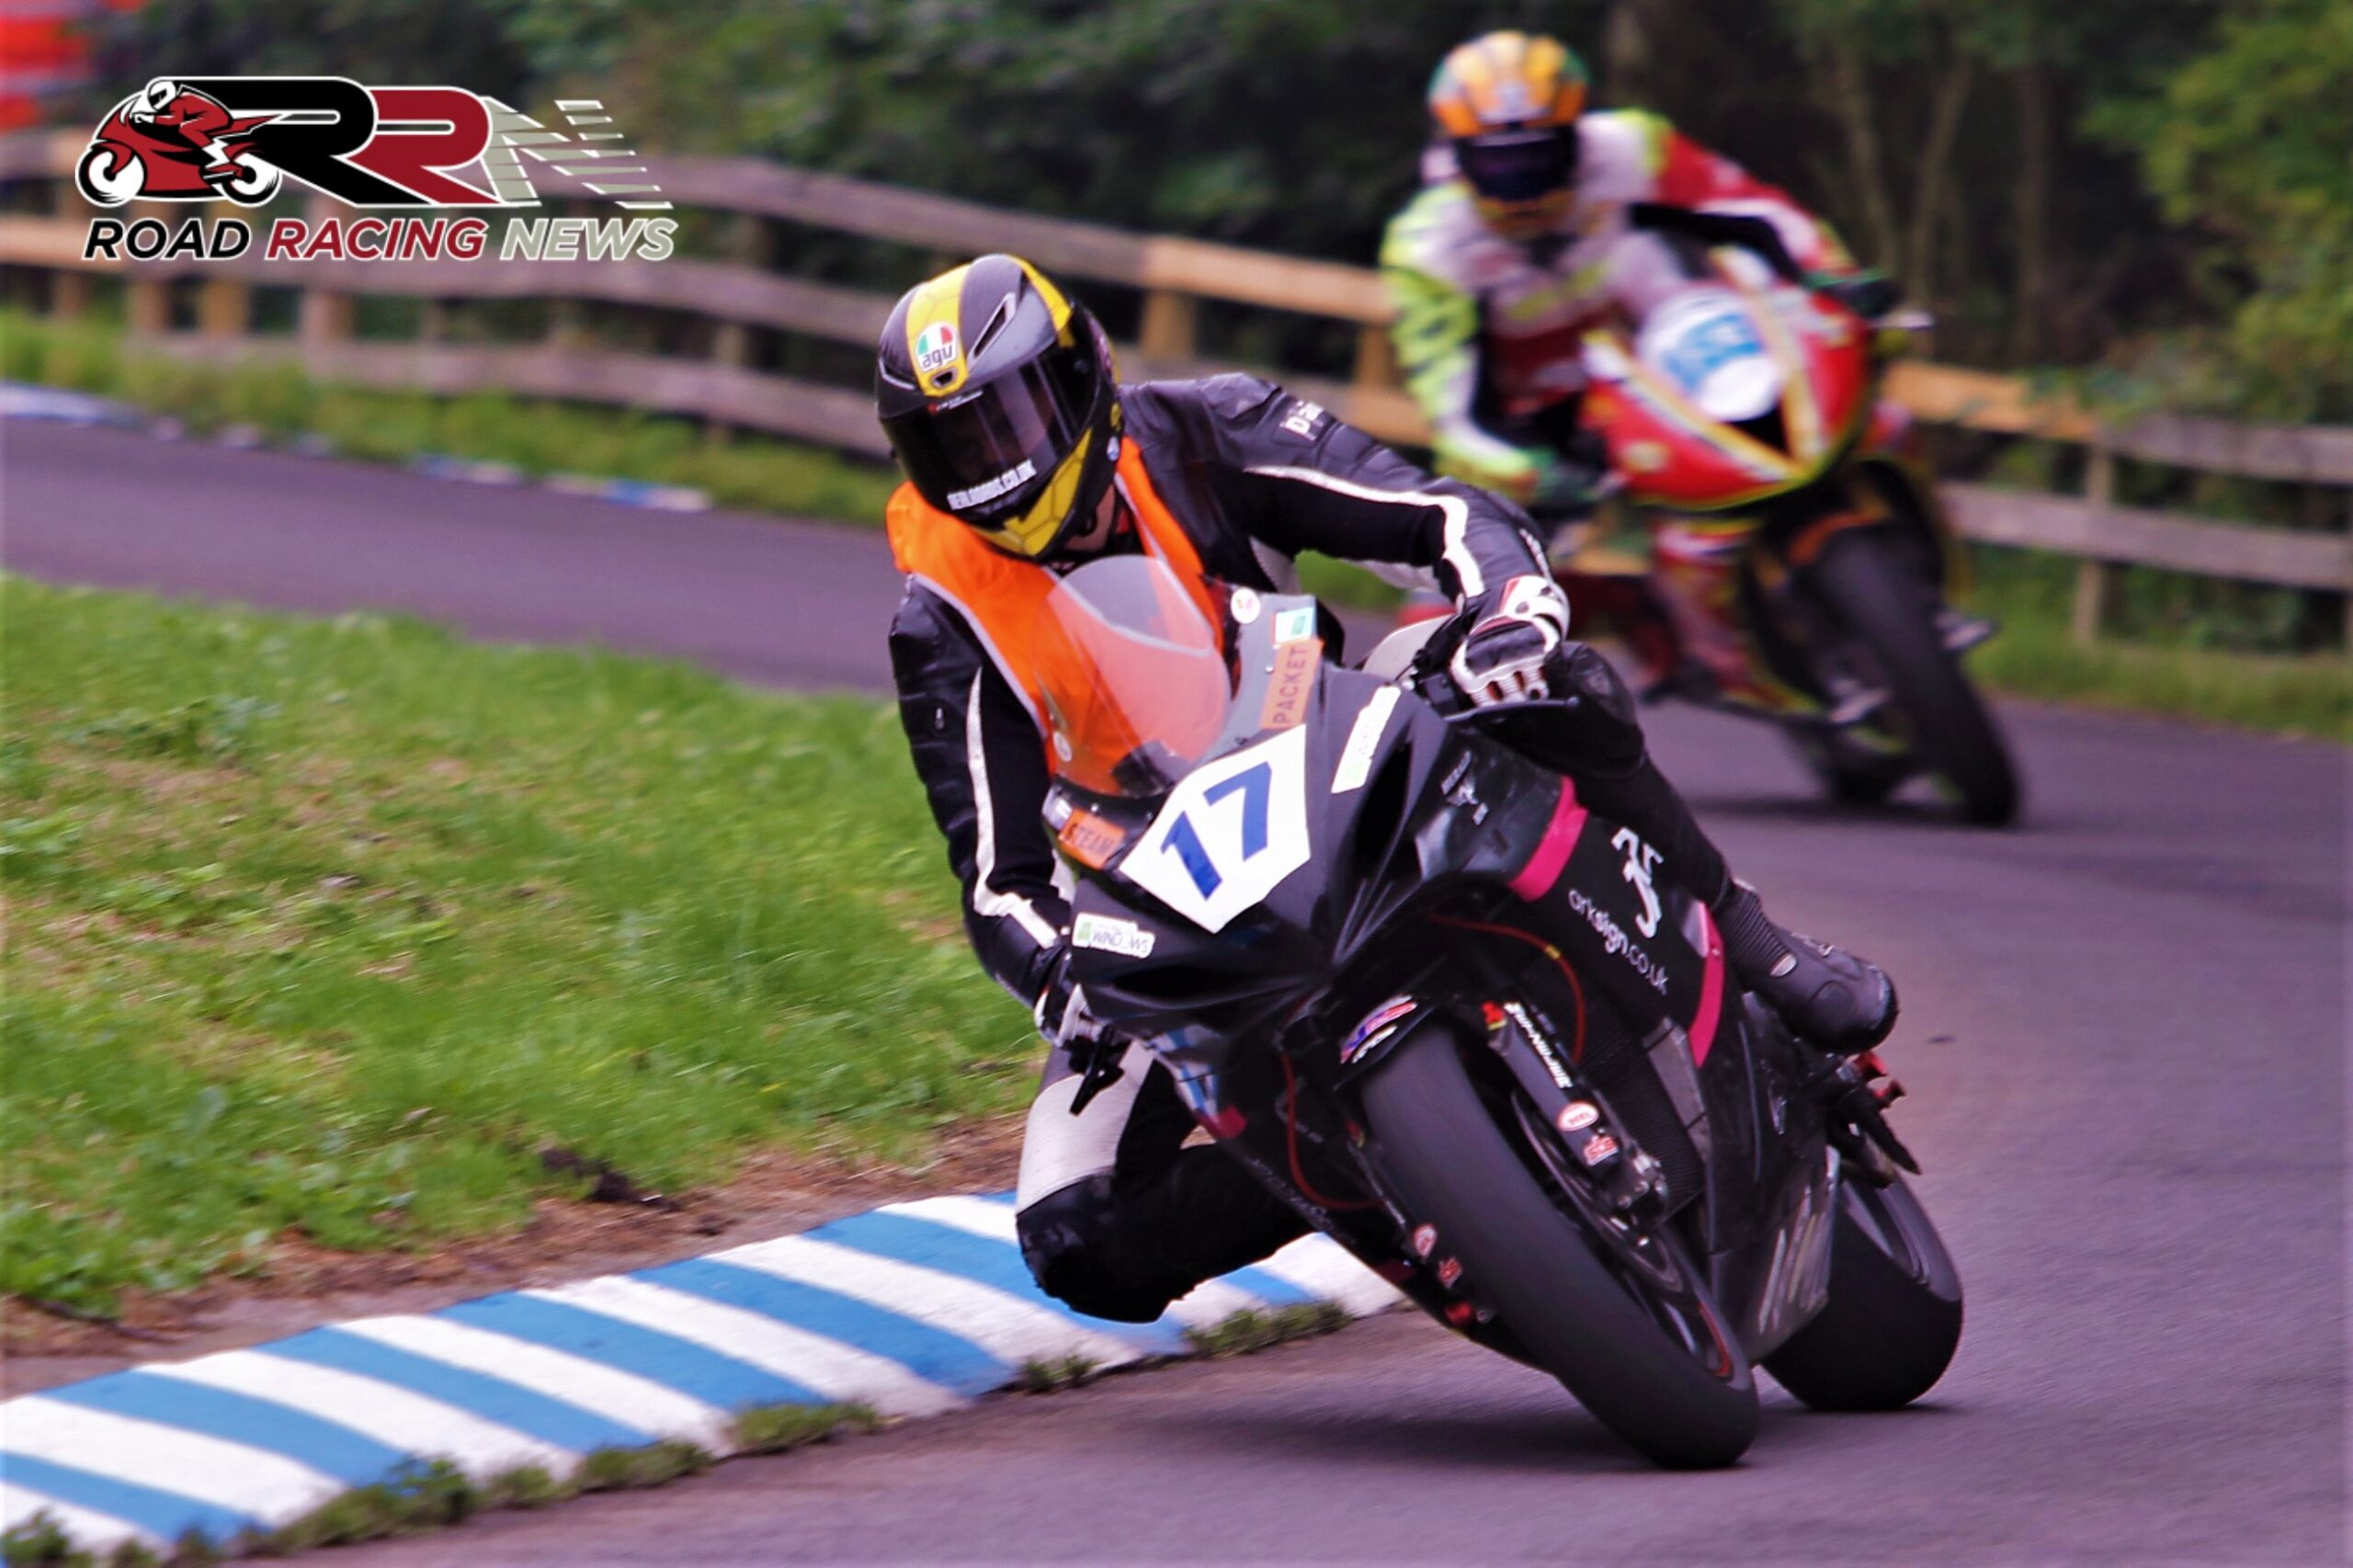 Akroyd Leads Scarborough Newcomers Fraternity At Barry Sheene Classic